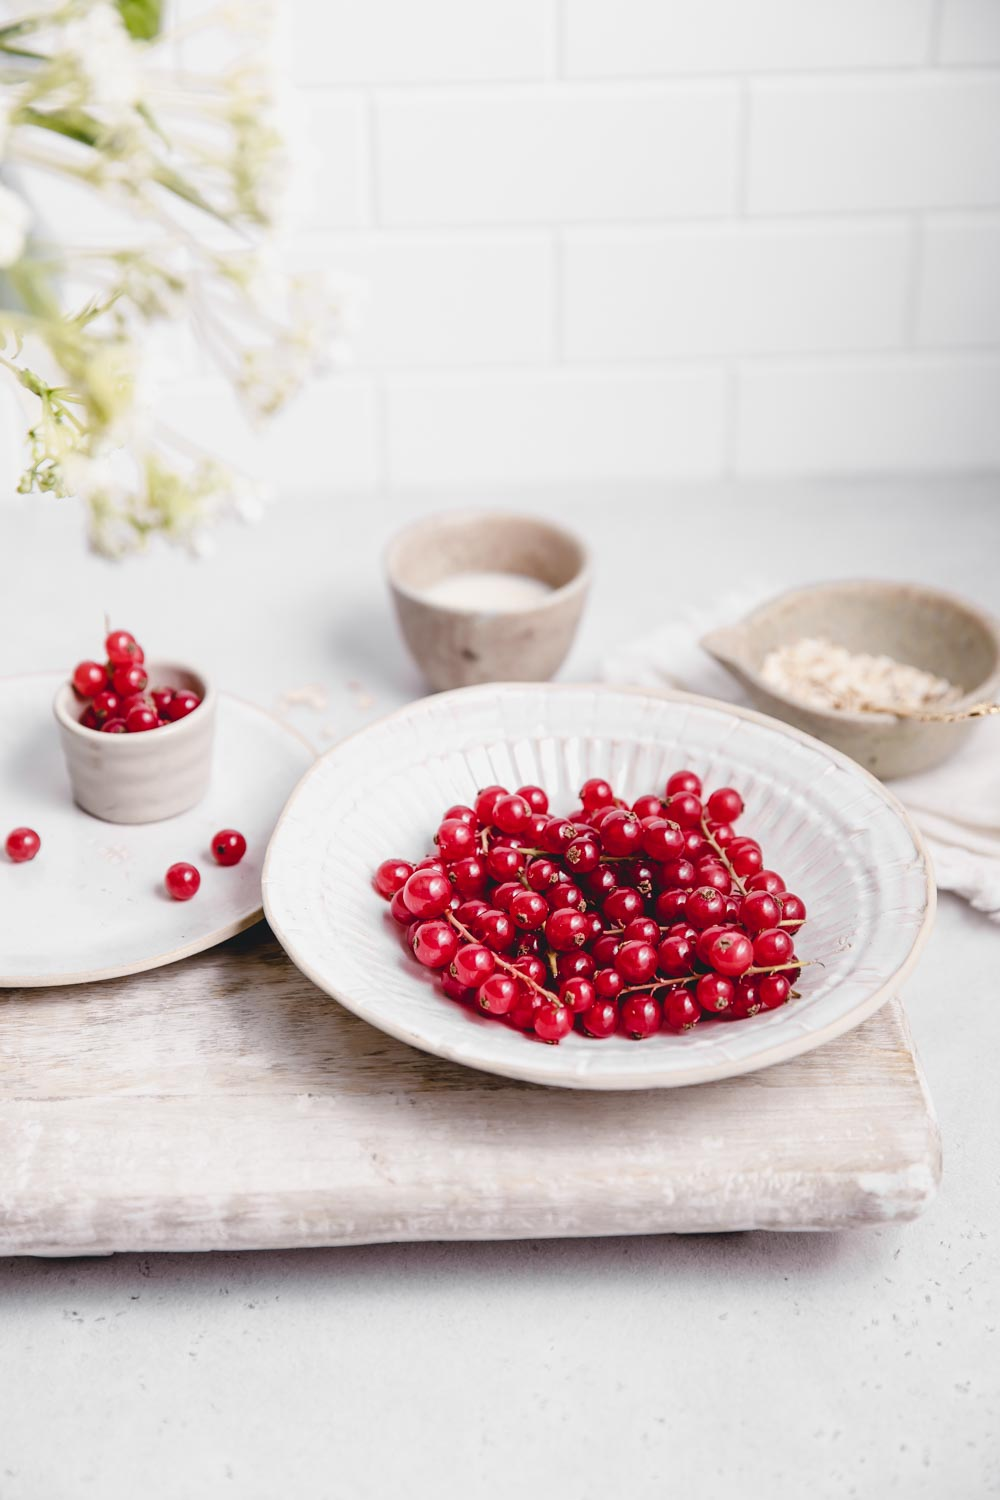 fresh red currants in a white bowl on a white backdrop with a white backdrop wall on a wooden chopping board next to a small bowl with red currants and a cup of oats and soy milk in the background